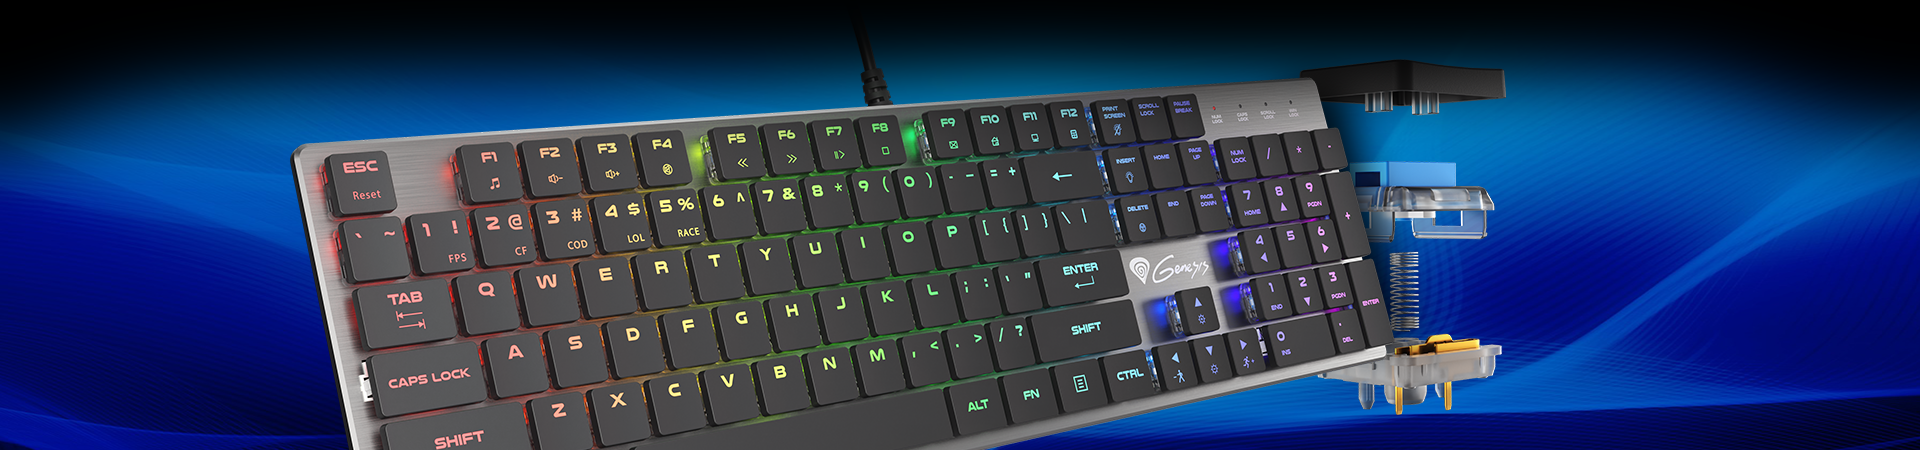 THE THOR 420 is a low-profile mechanical keyboard